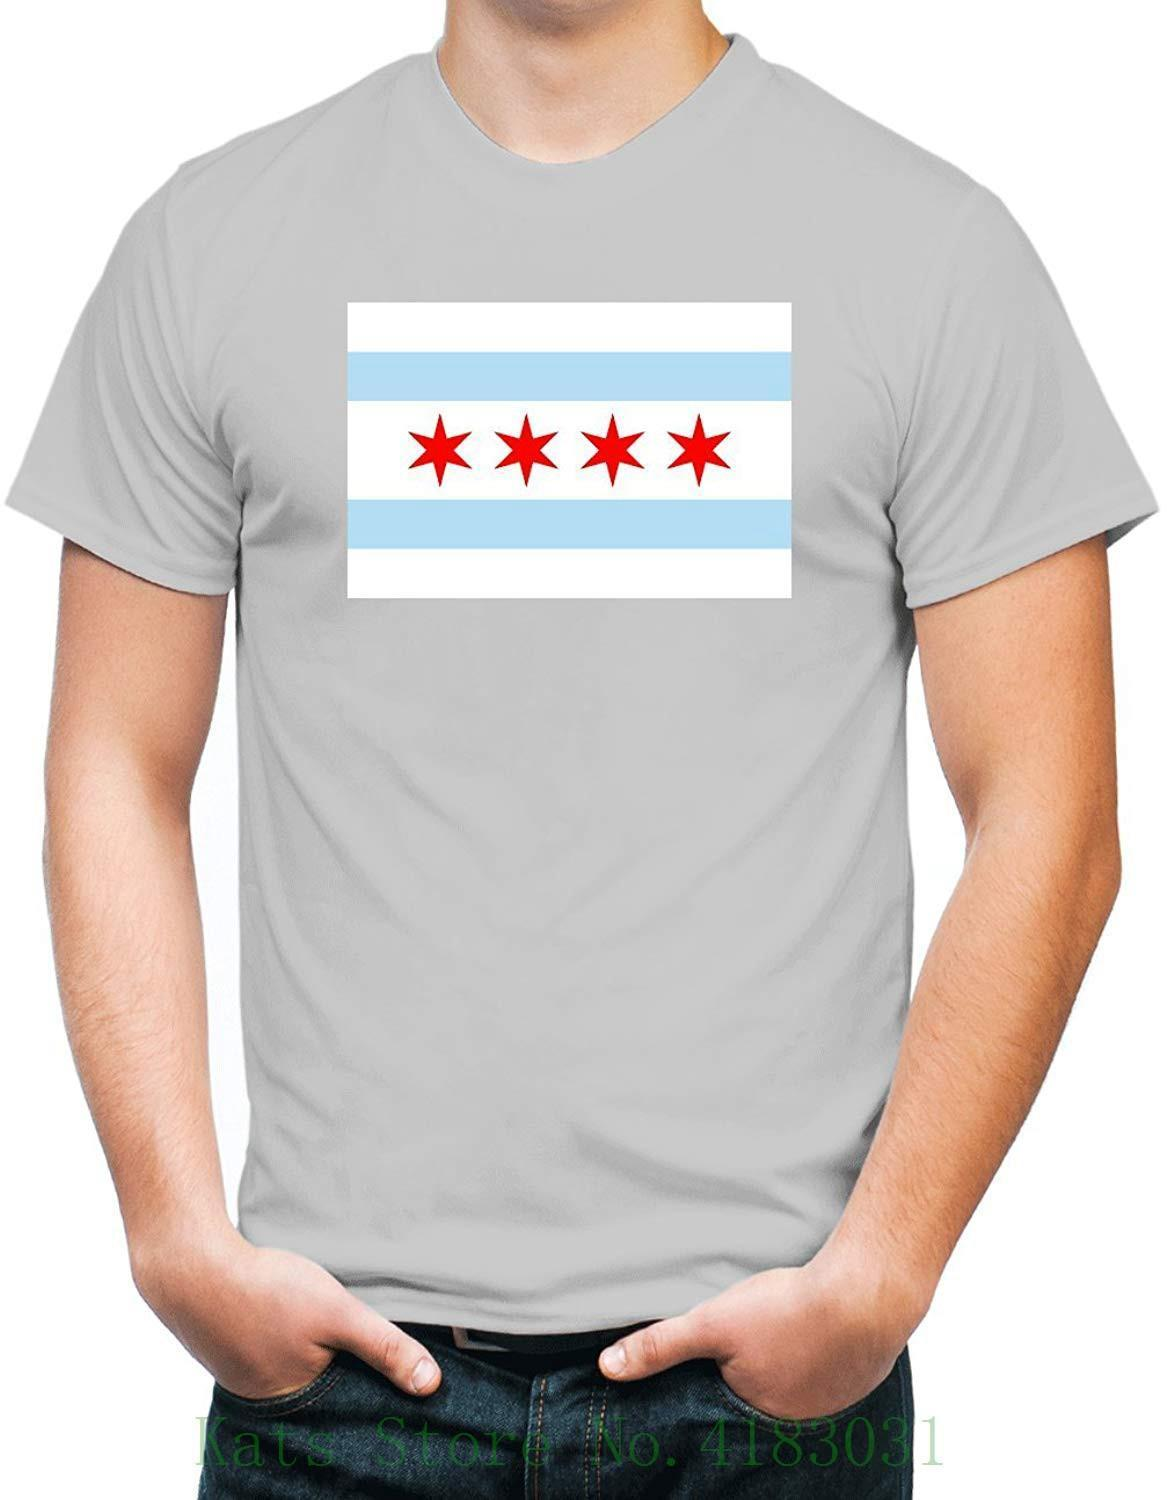 Grosshandel Zornick Tees Chicago Flag T Shirt Casual Plus Grosse T